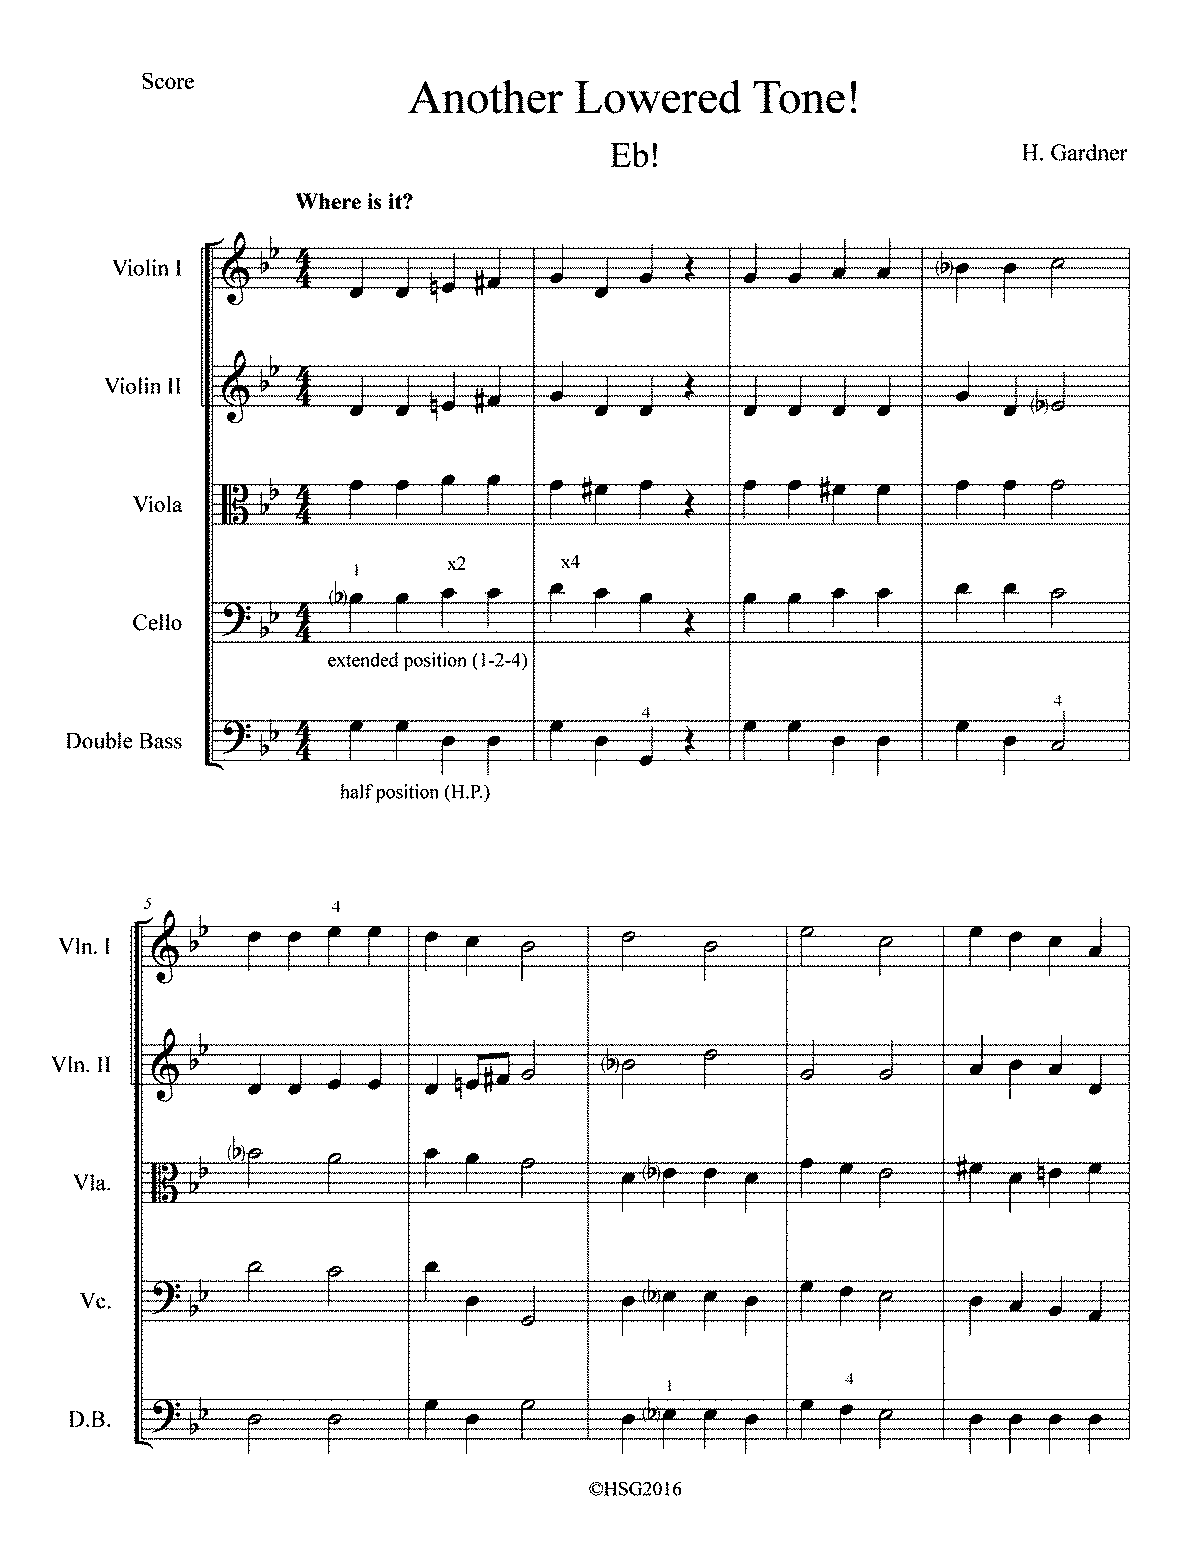 PMLP658353-Another Lowered Tone! score.pdf